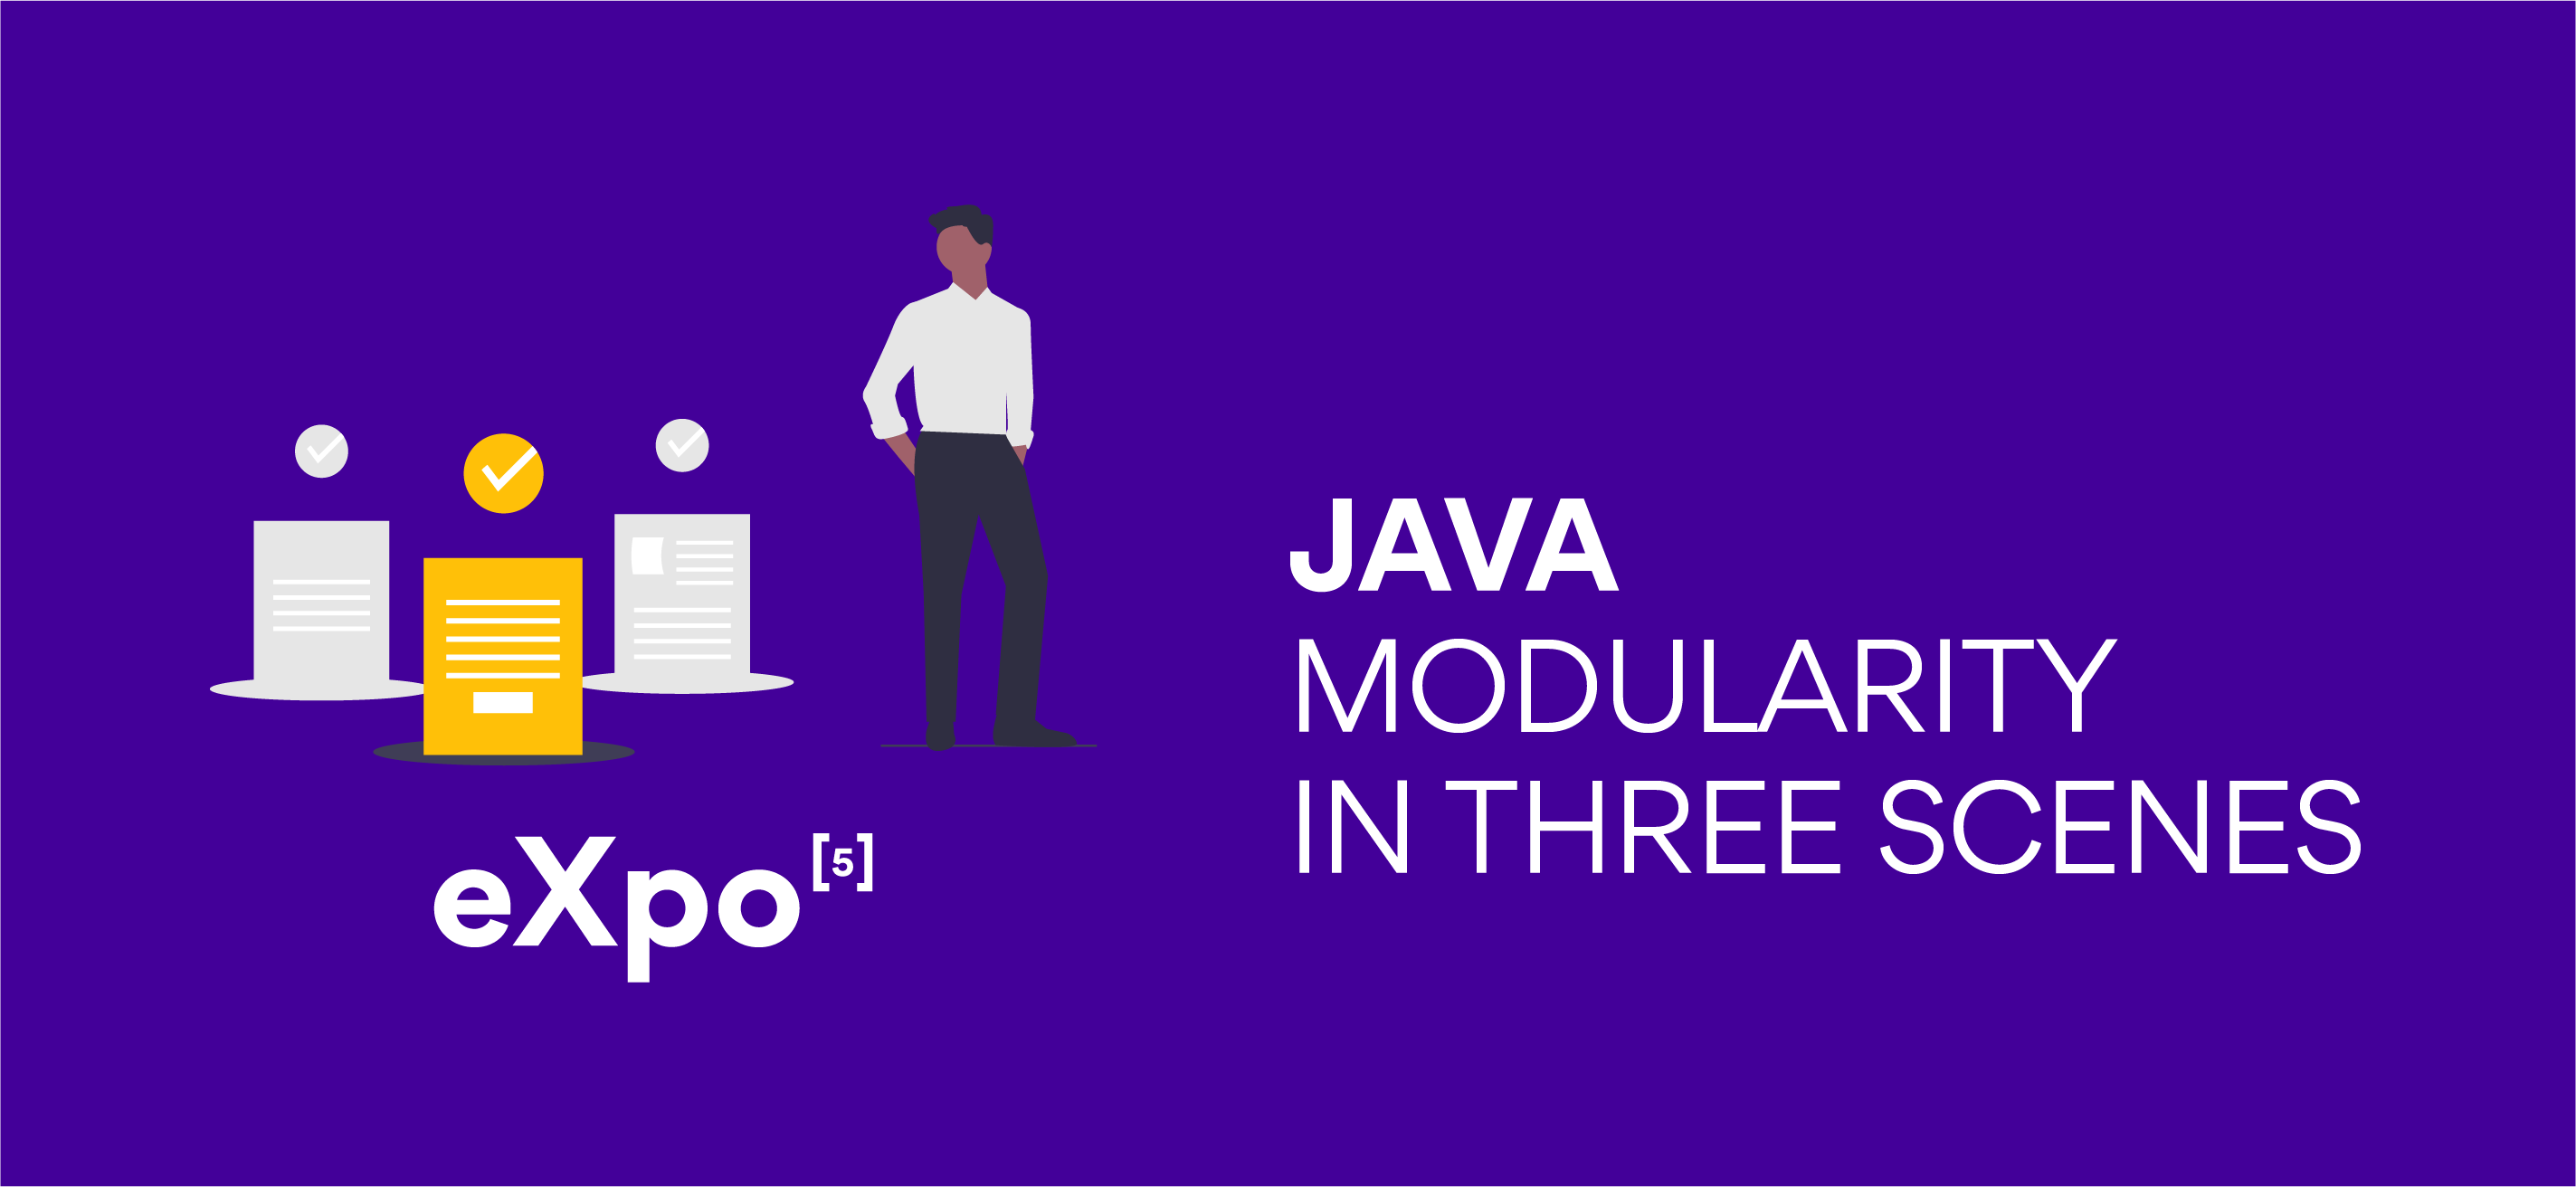 Java modularity in three scenes